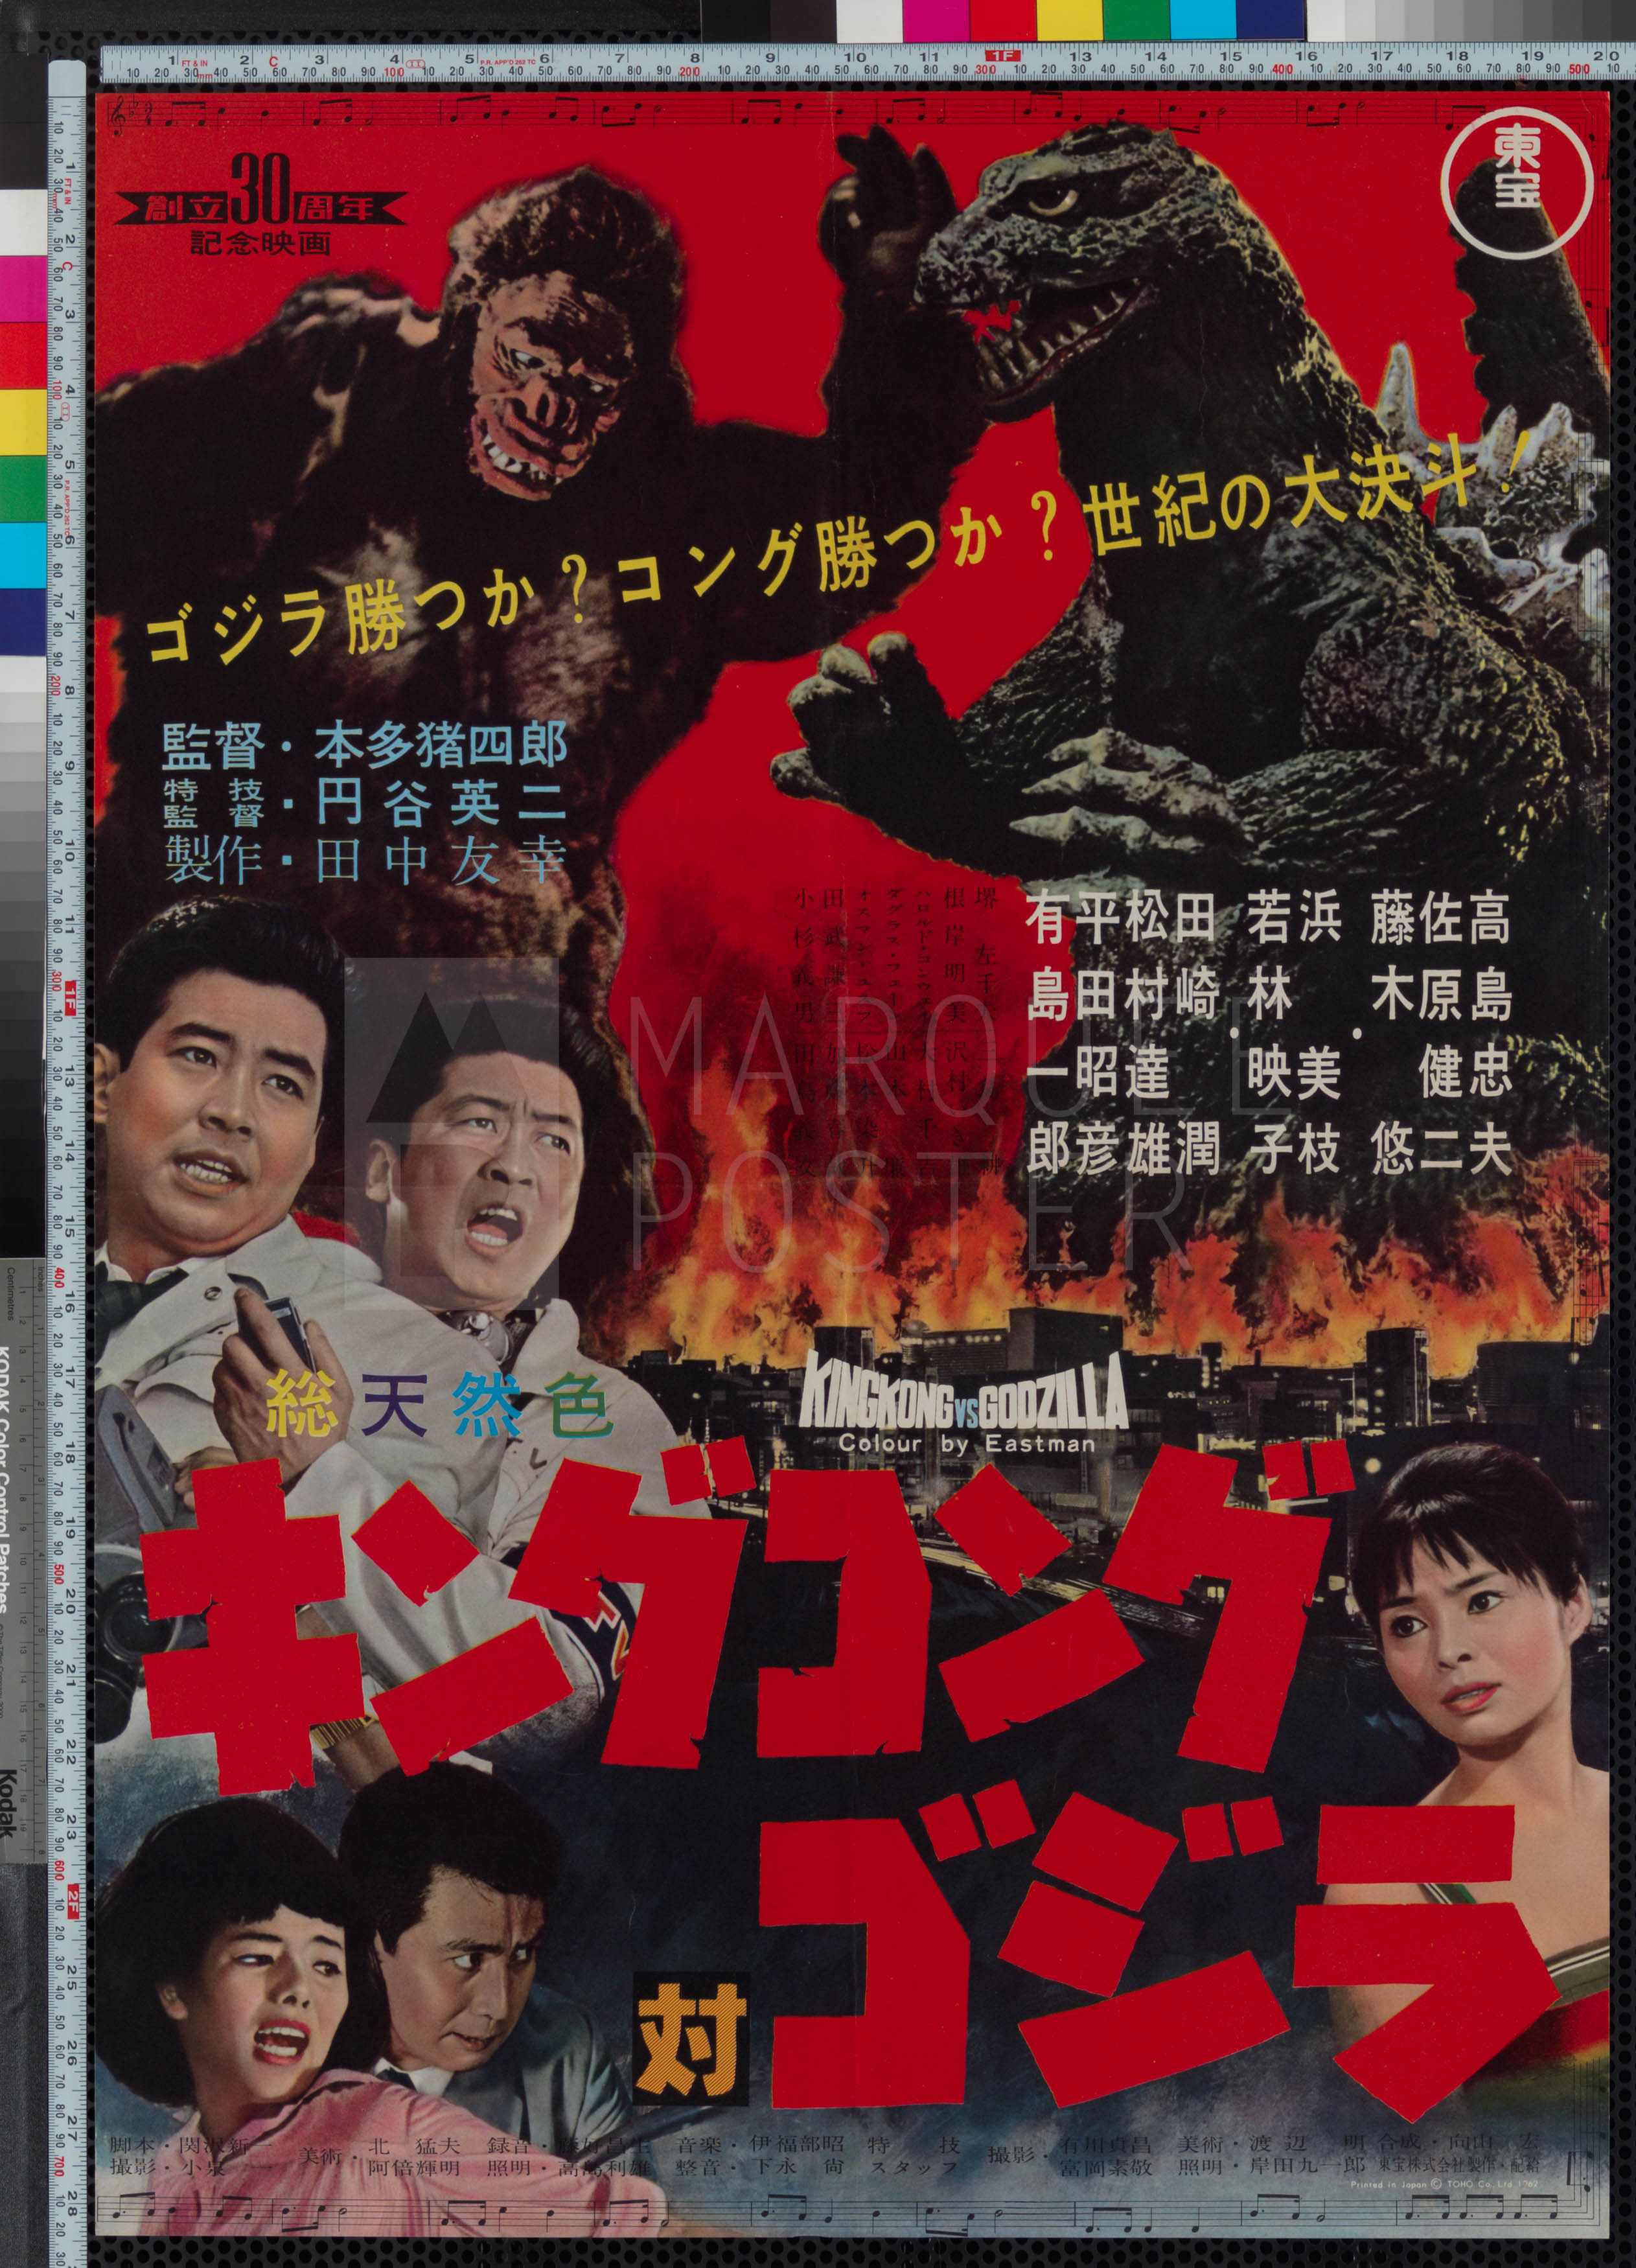 13-king-kong-vs-godzilla-japanese-b2-1962-02